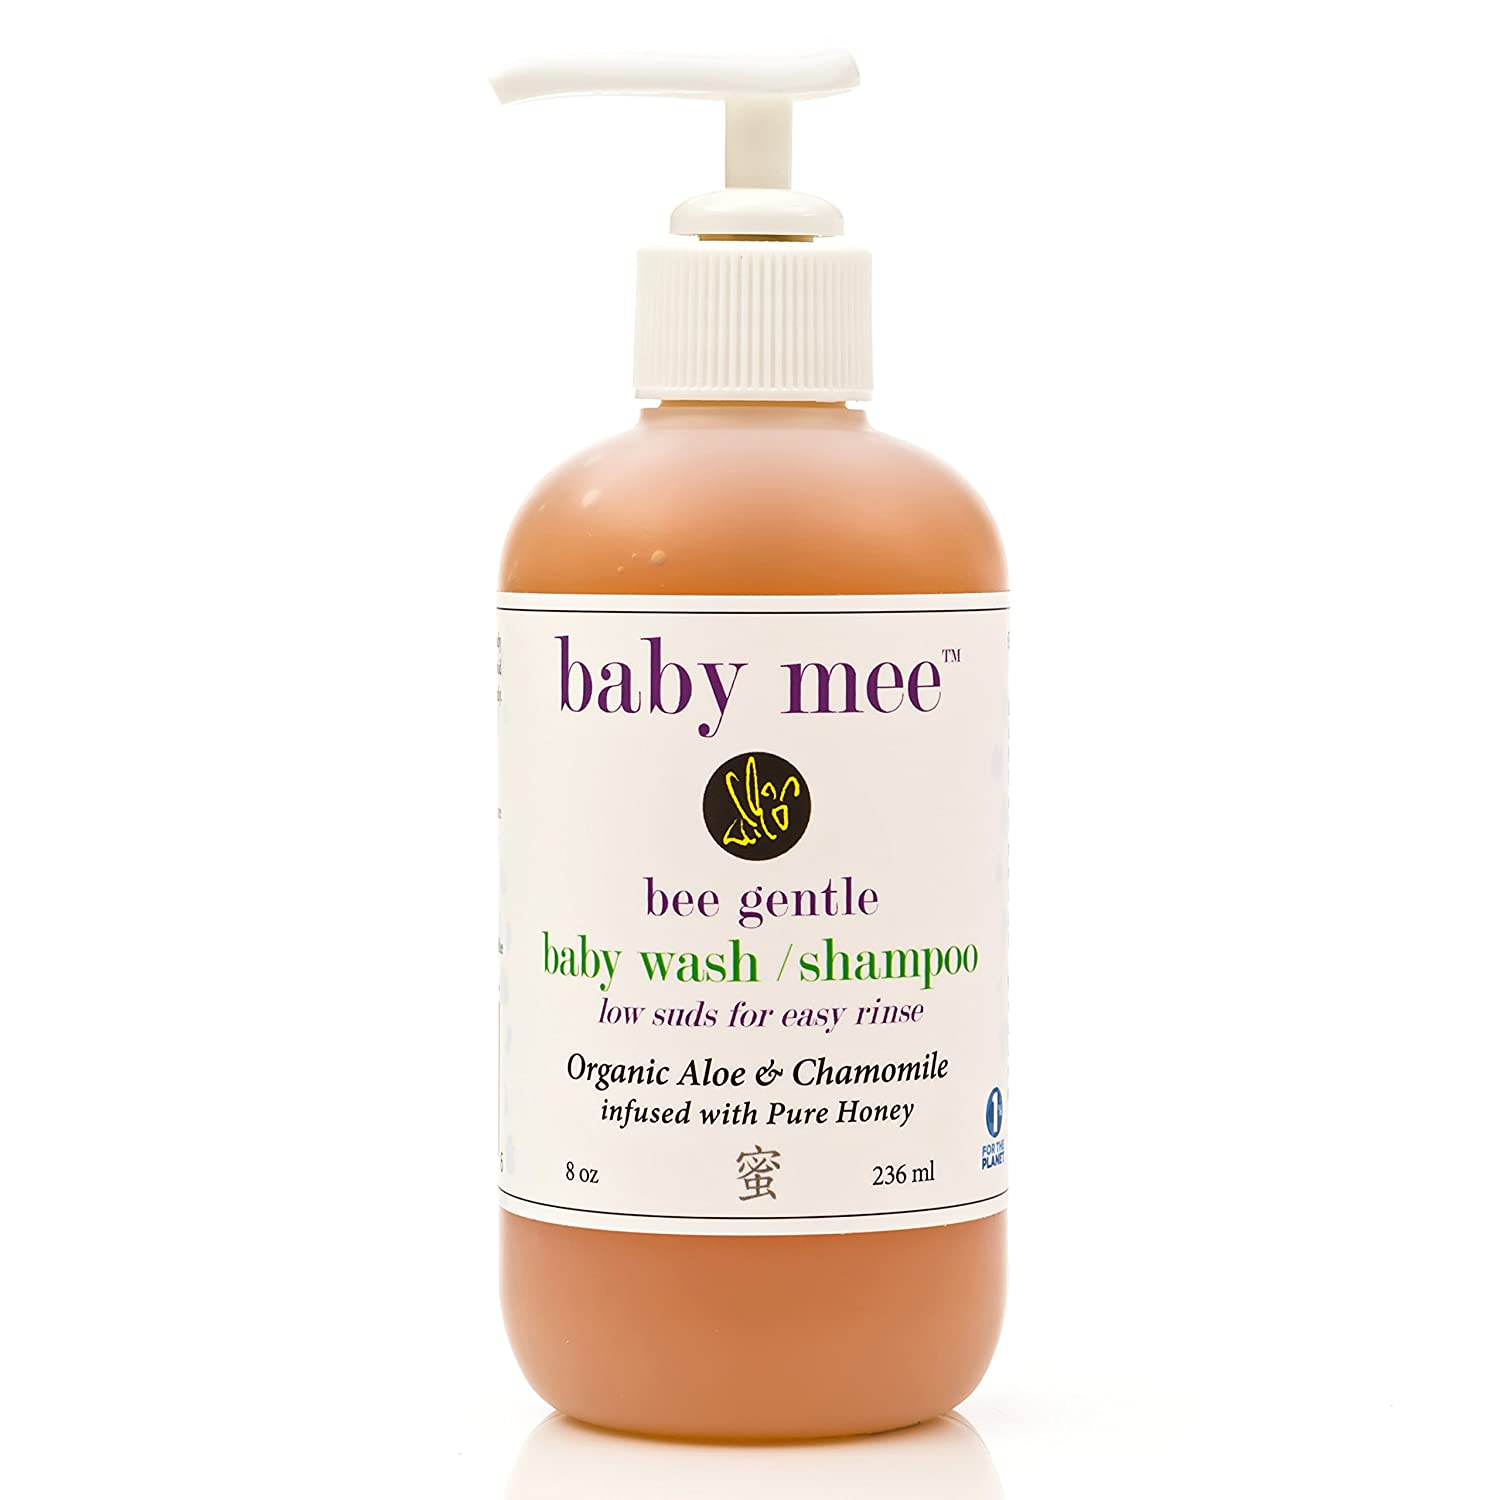 Top 13 Best Organic Baby Washes Reviews in 2019 10